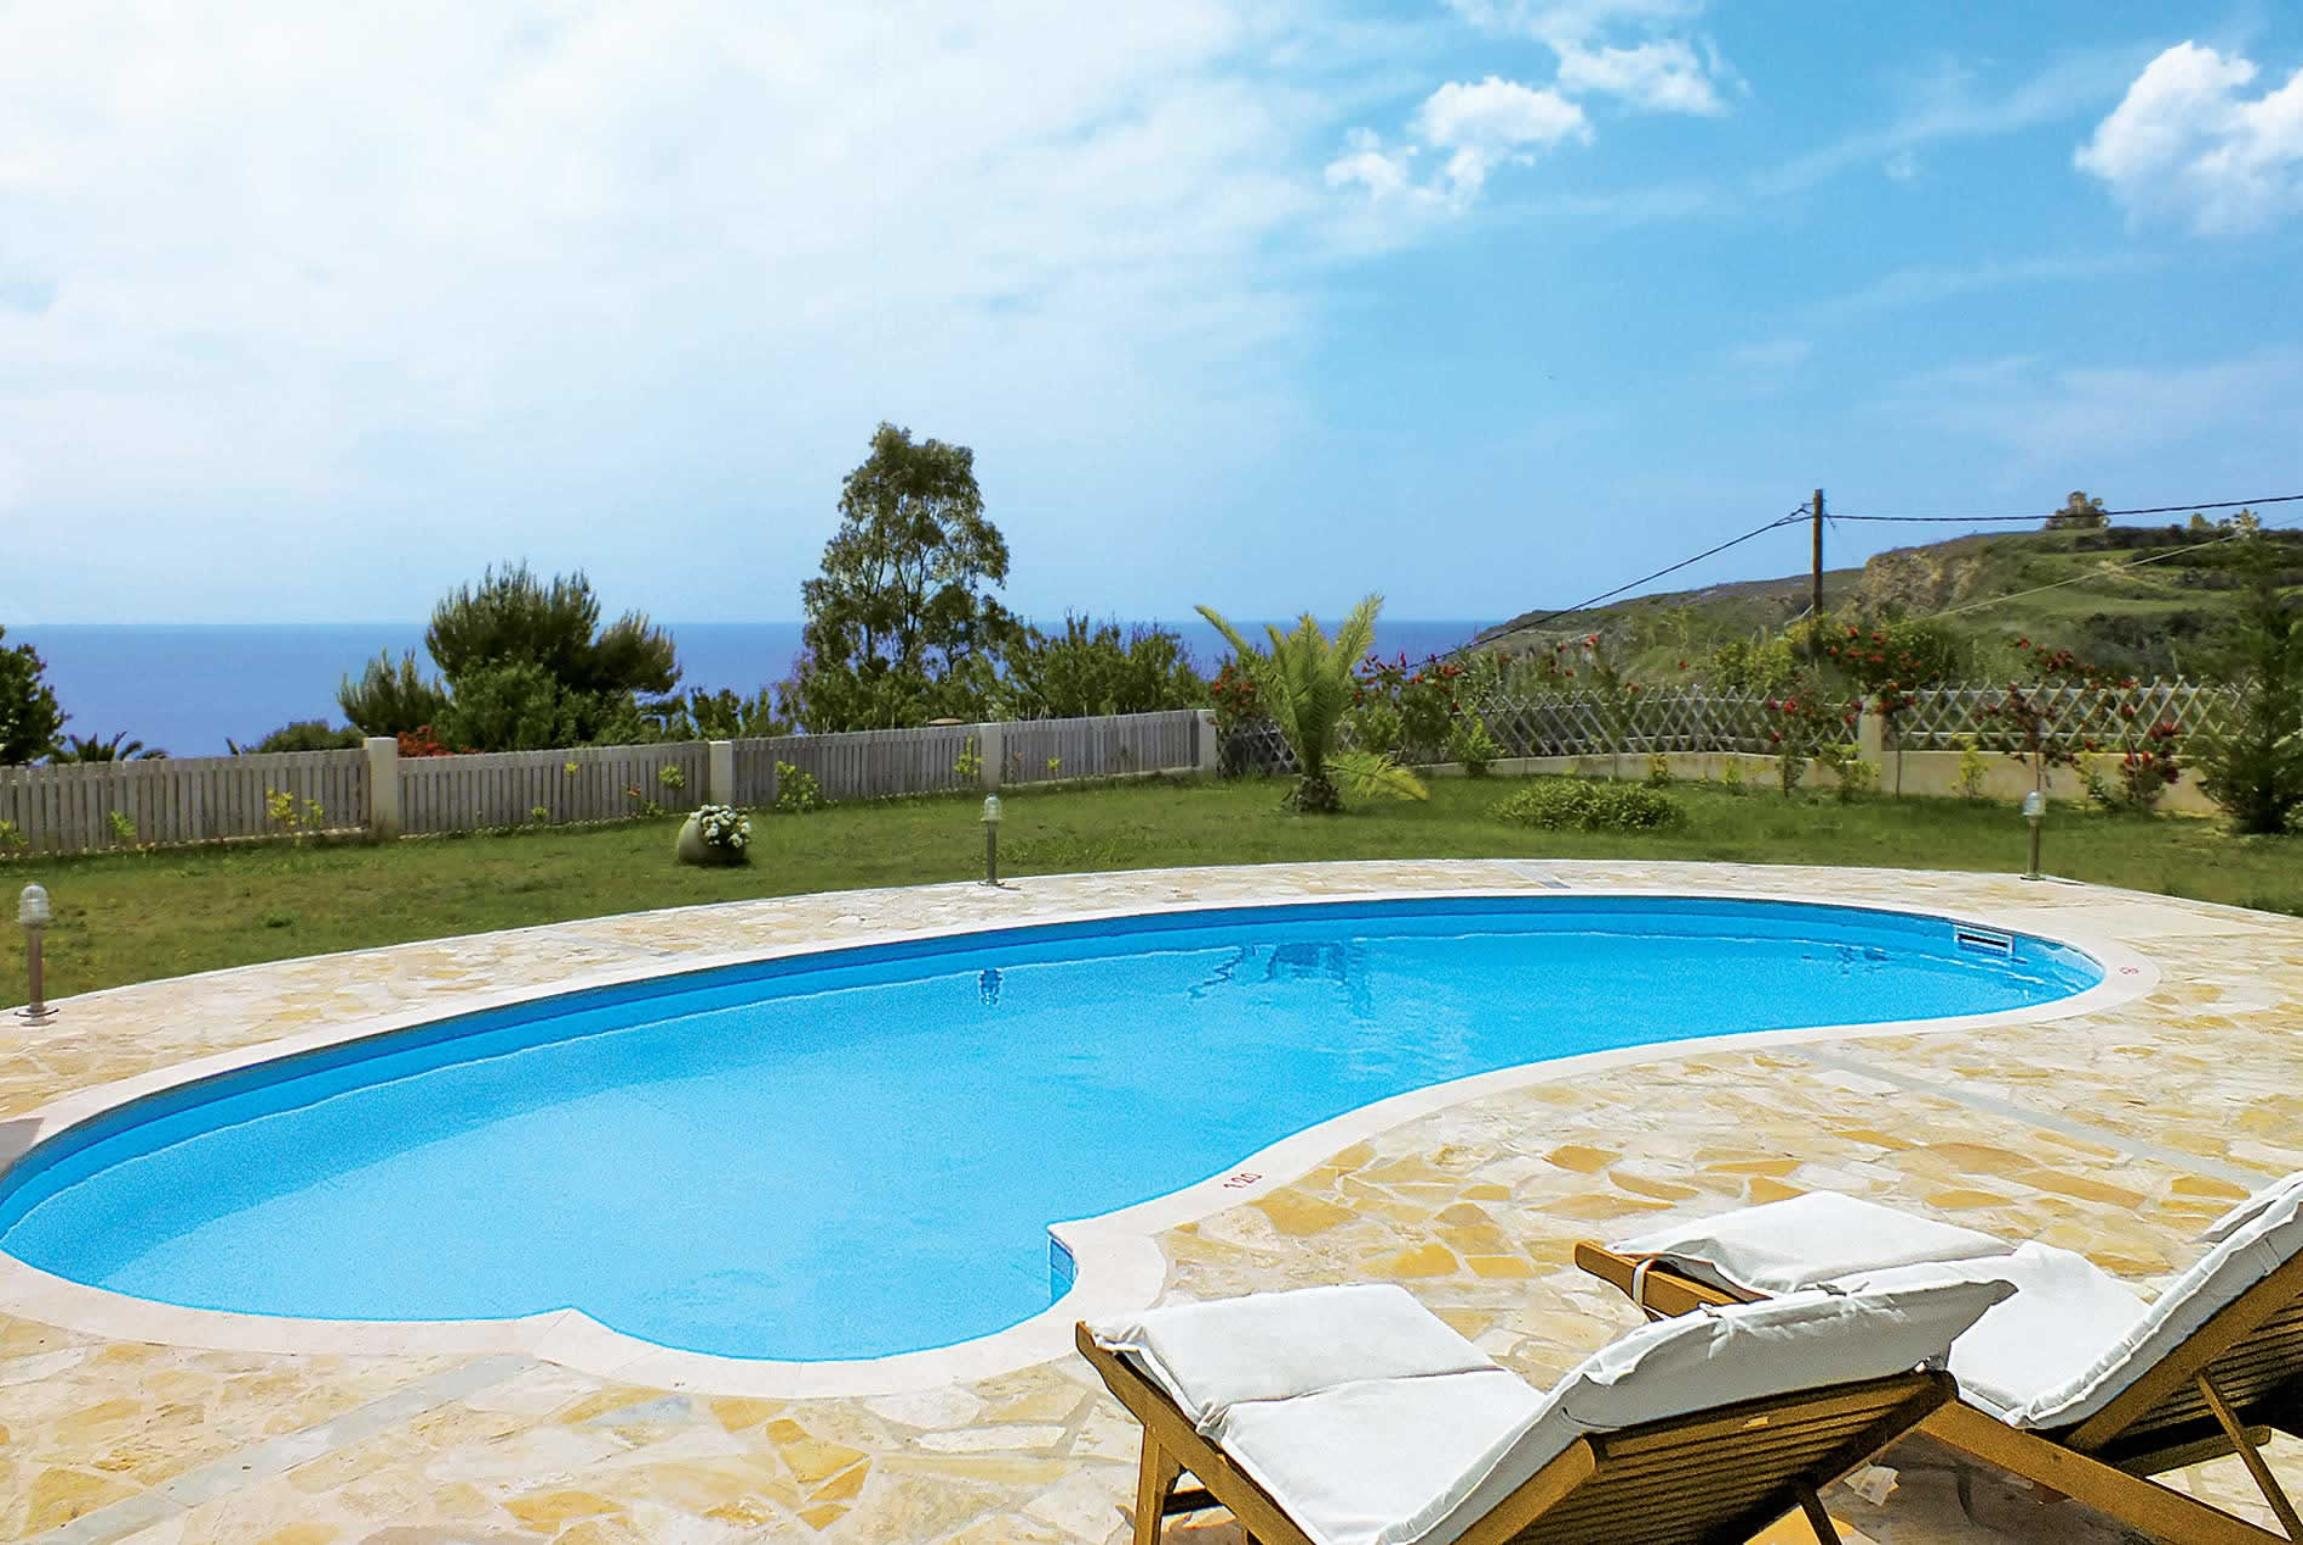 Read more about Helios villa